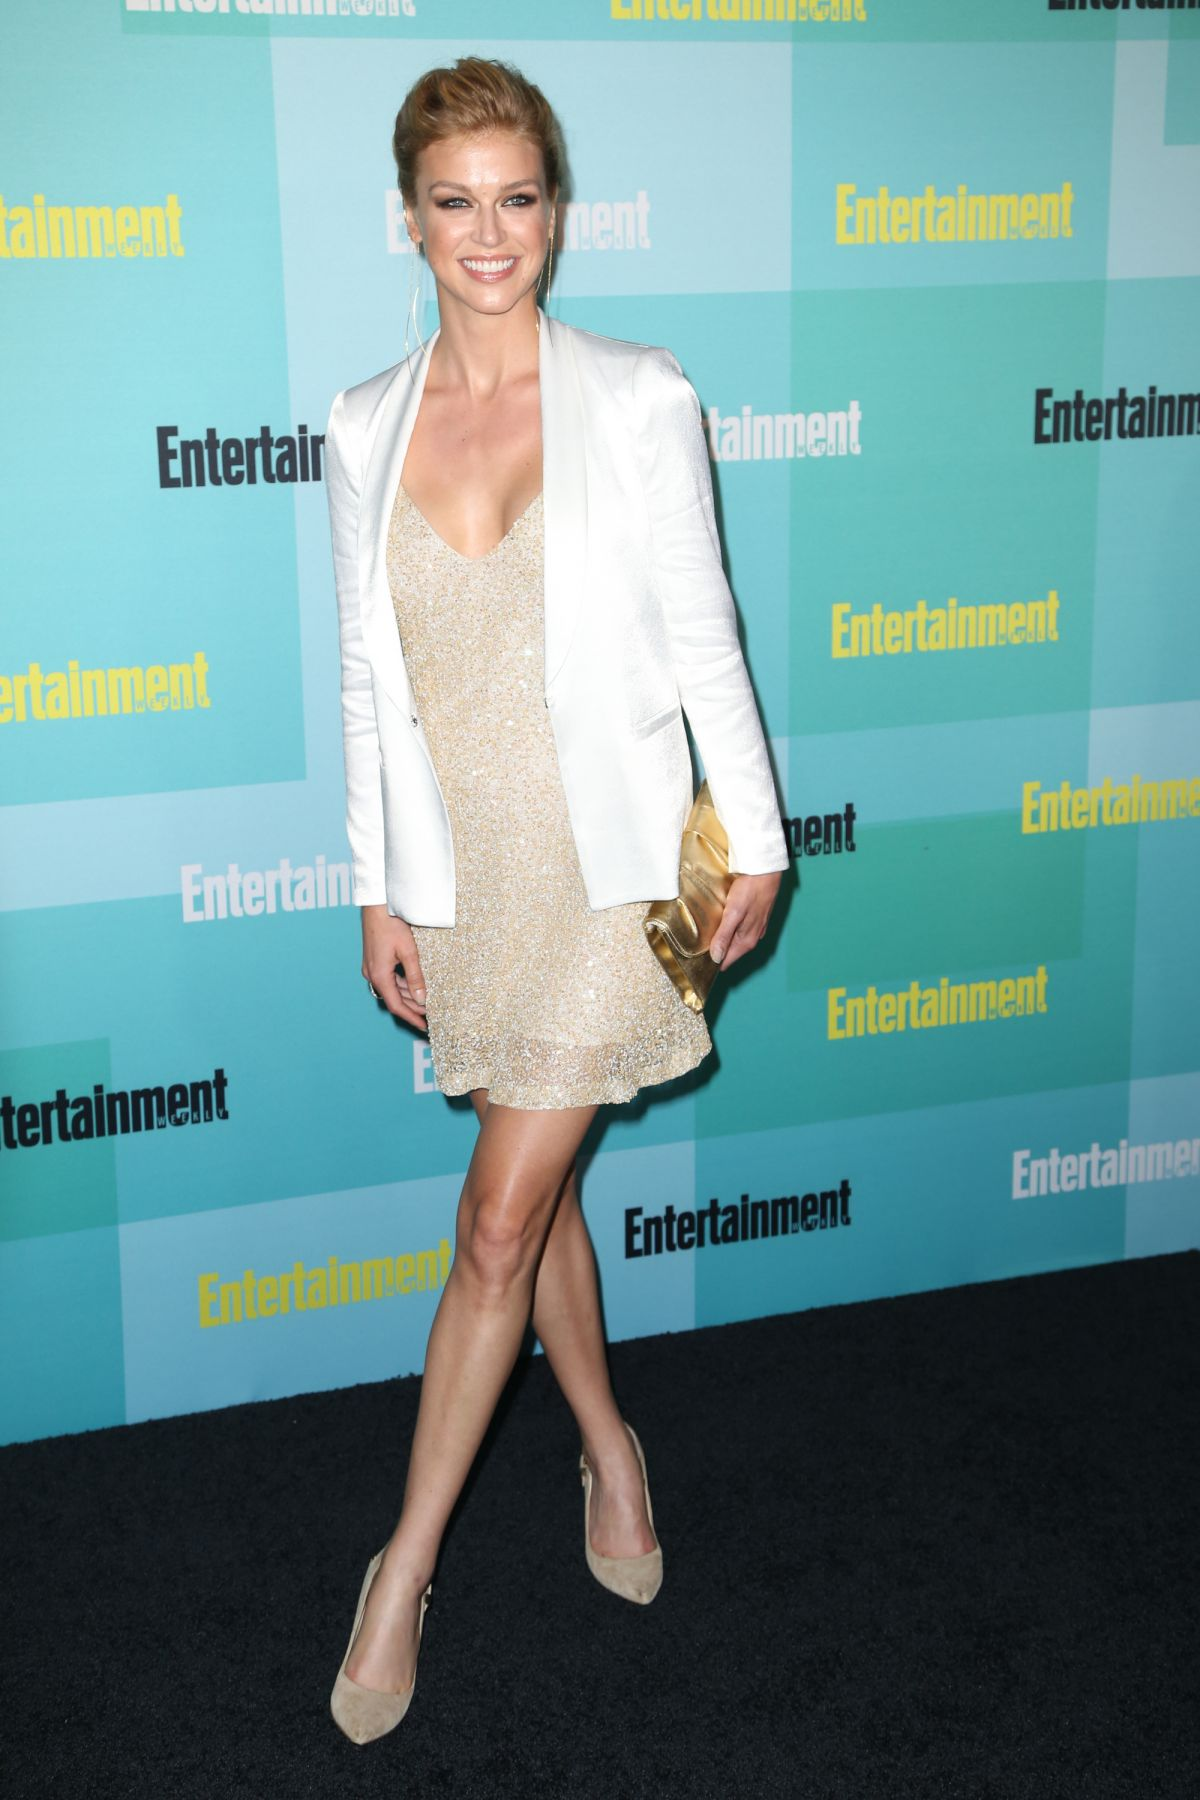 ADRIANNE PALICKI at Entertainment Weekly Party at Comic-con in San Diego